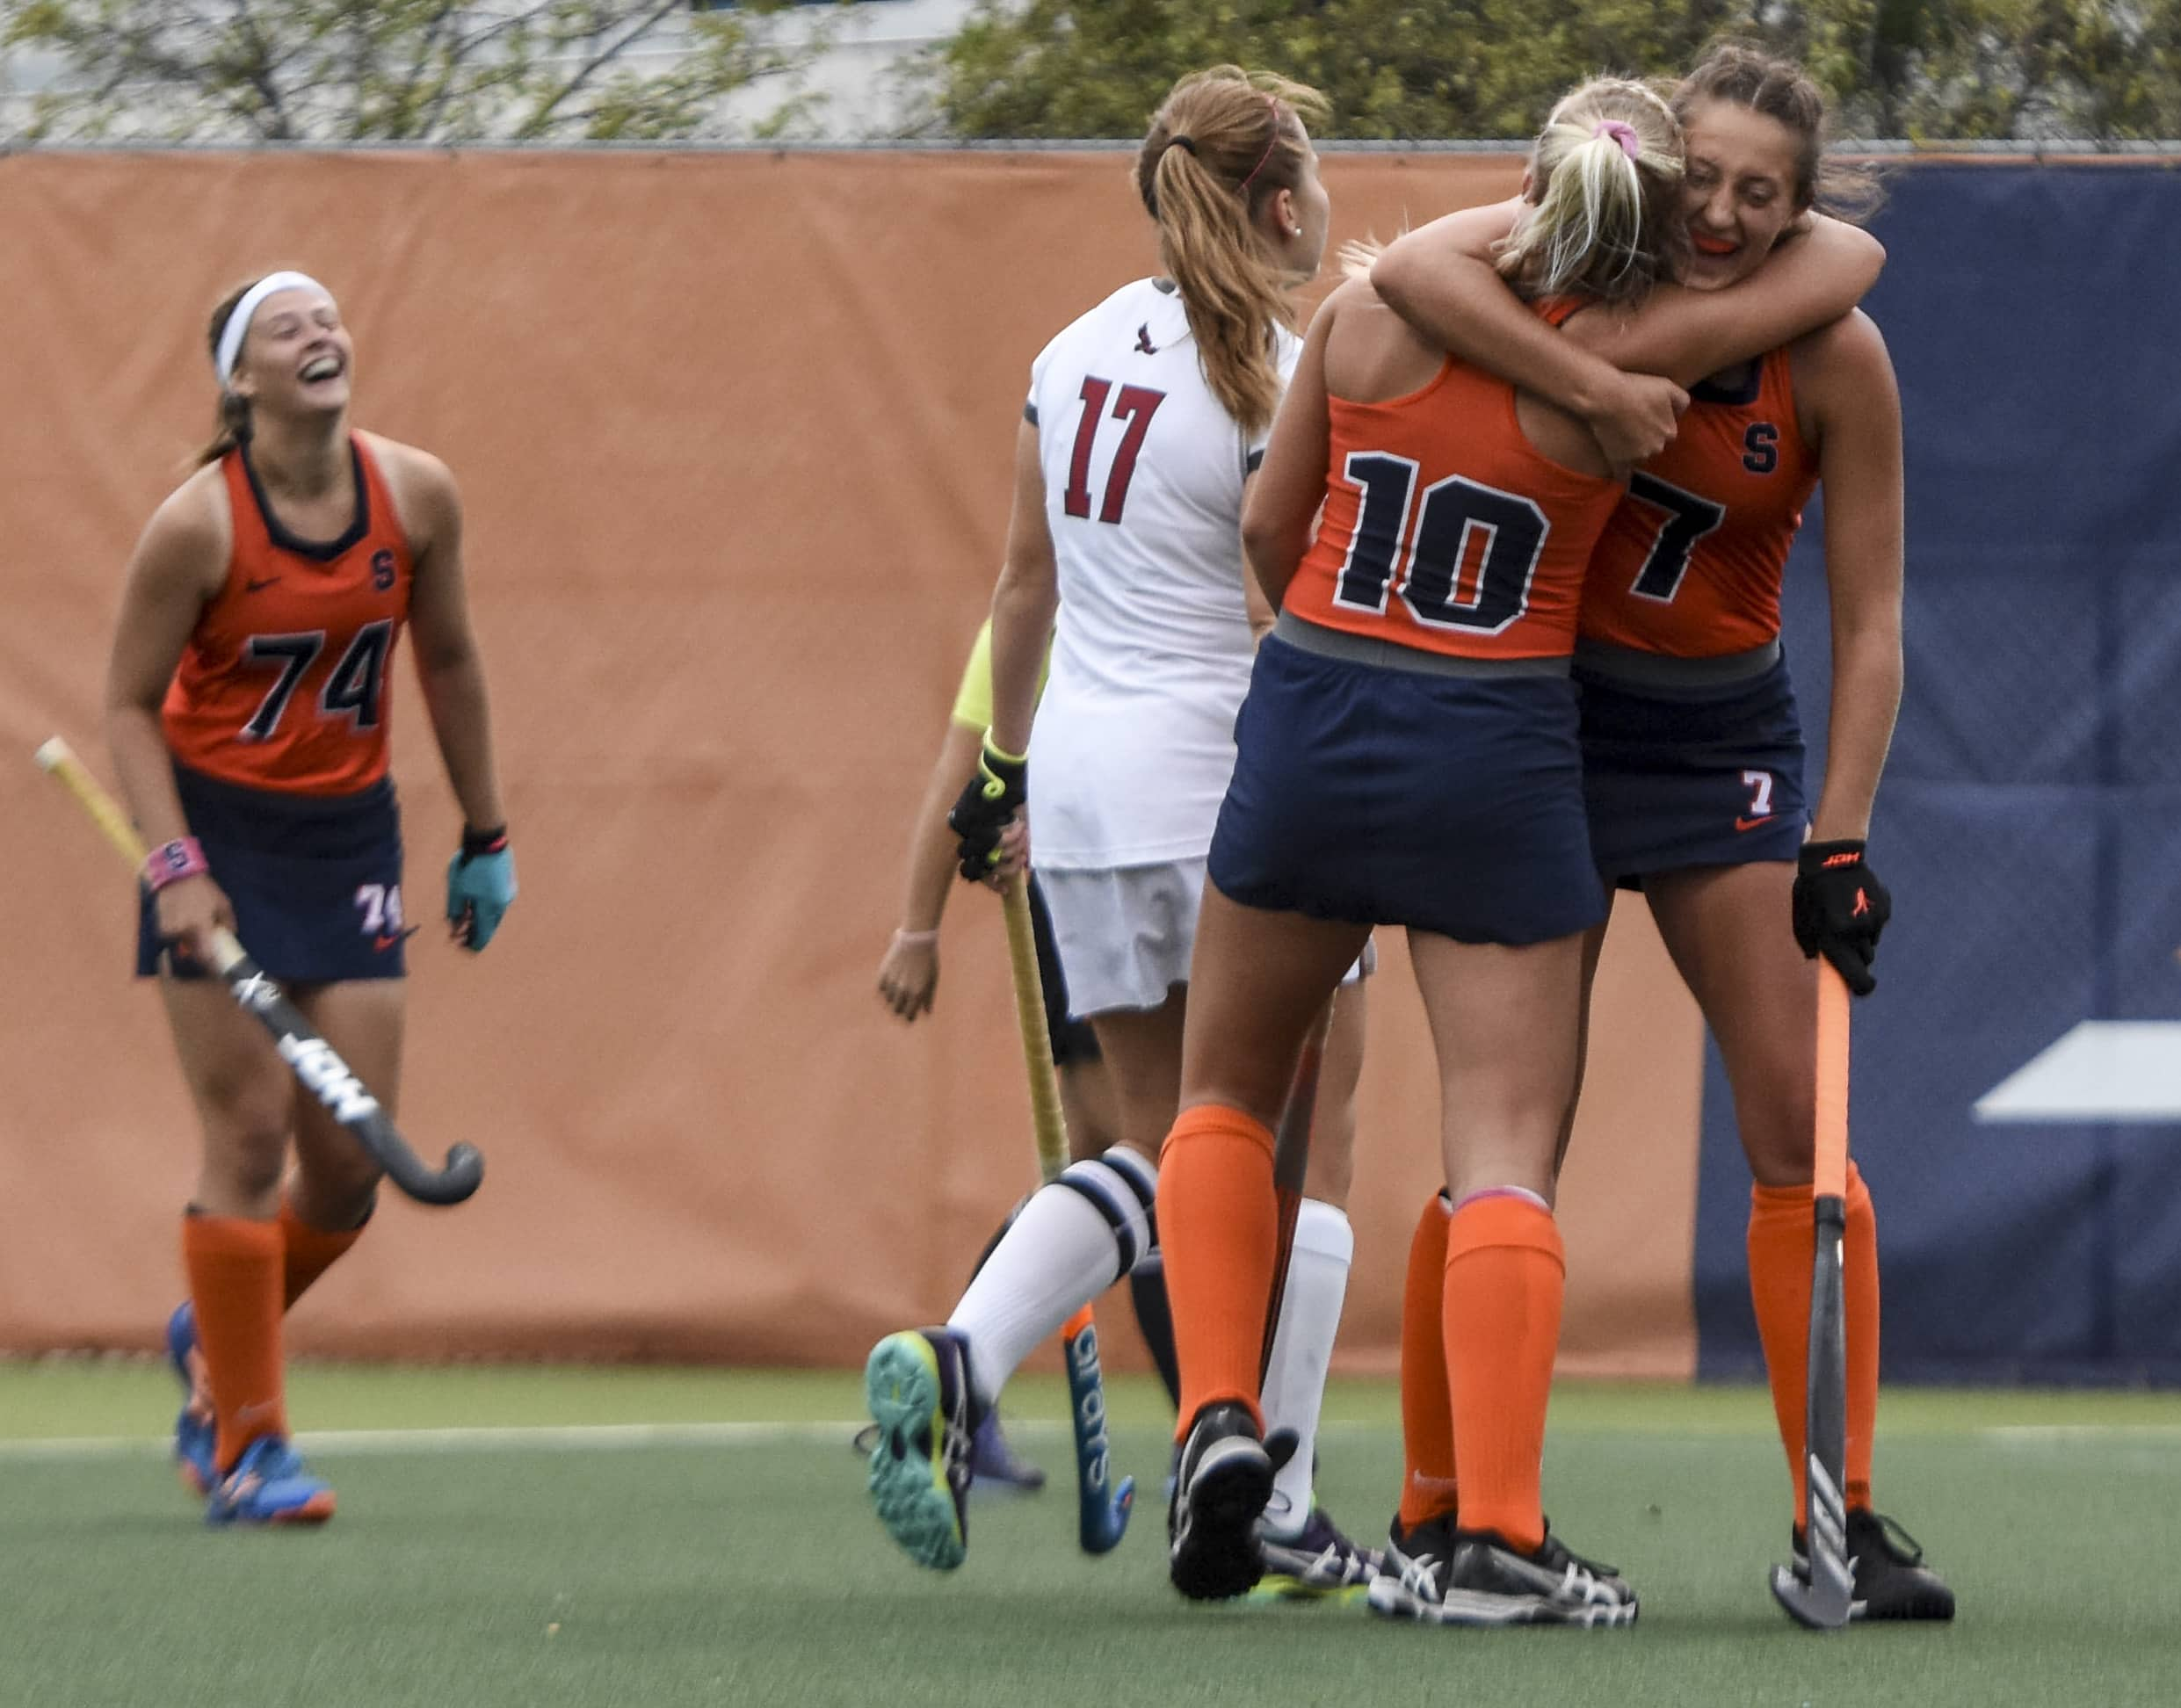 Sarah Luby embraces teammate, forward Charlotte De Vries after scoring